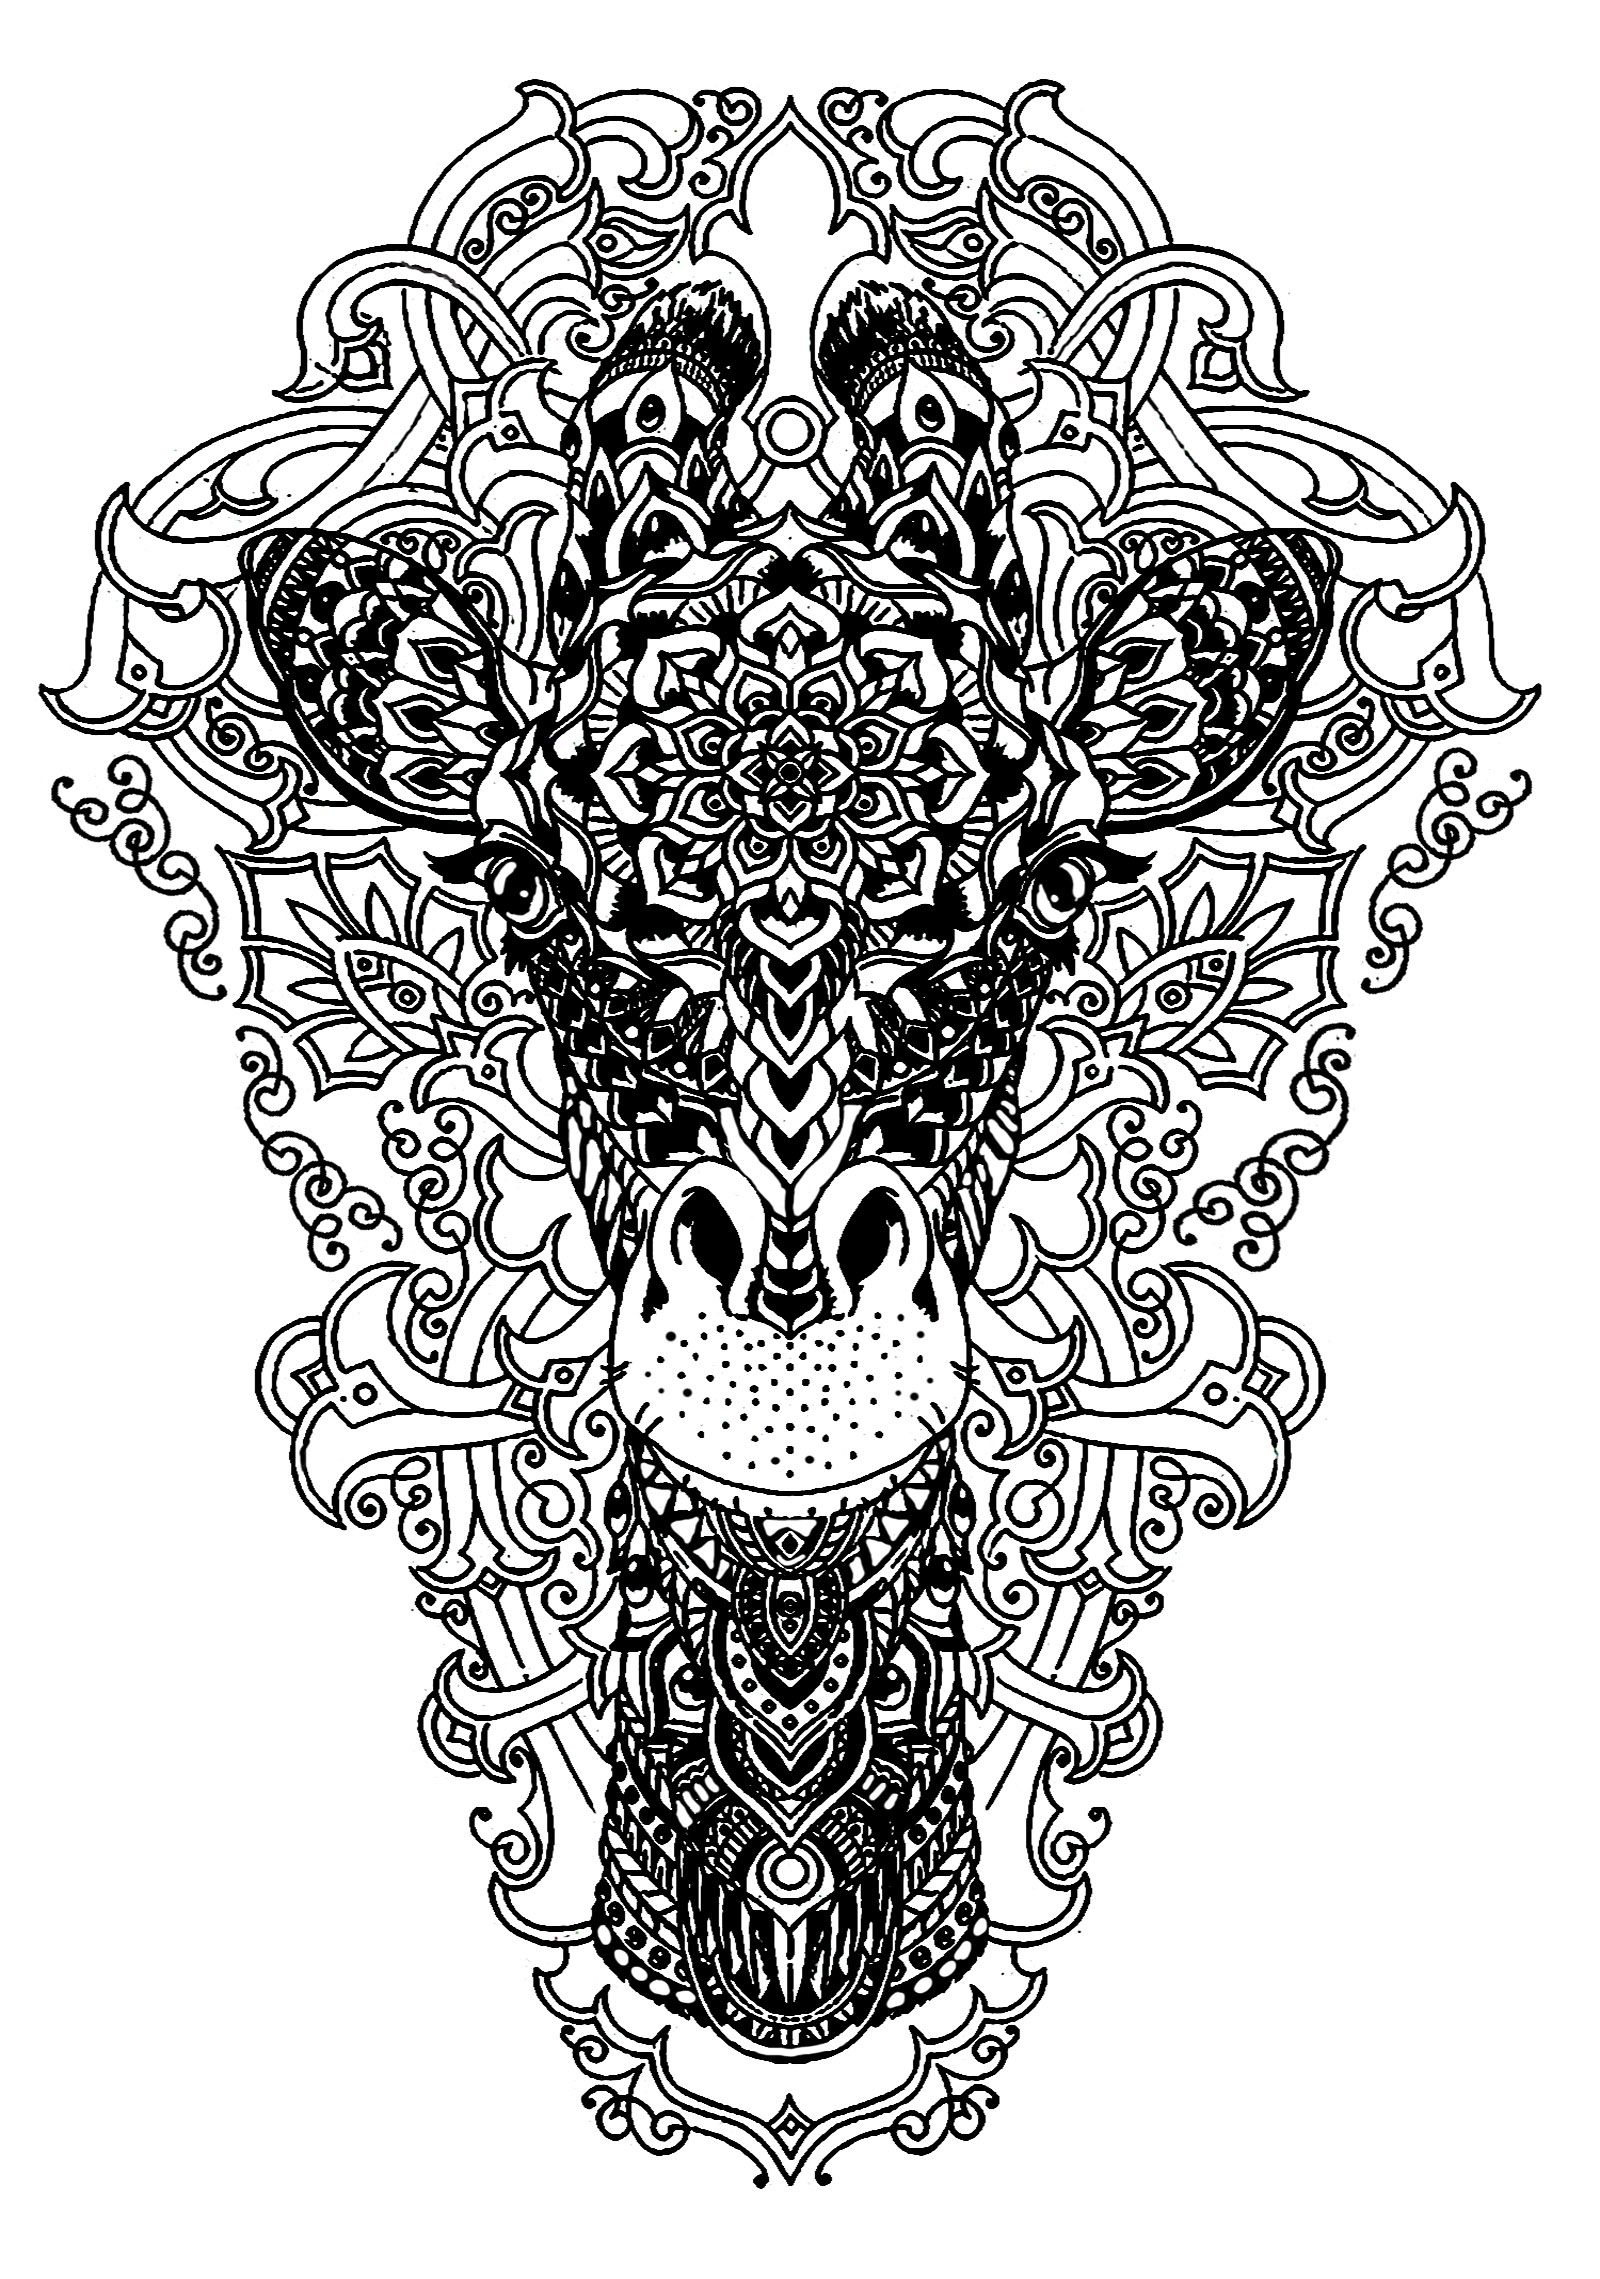 Head Of A Giraffe Head Of A Giraffe From The Gallery Giraffes Just Color Discover A Giraffe Coloring Pages Animal Coloring Pages Mandala Coloring Pages